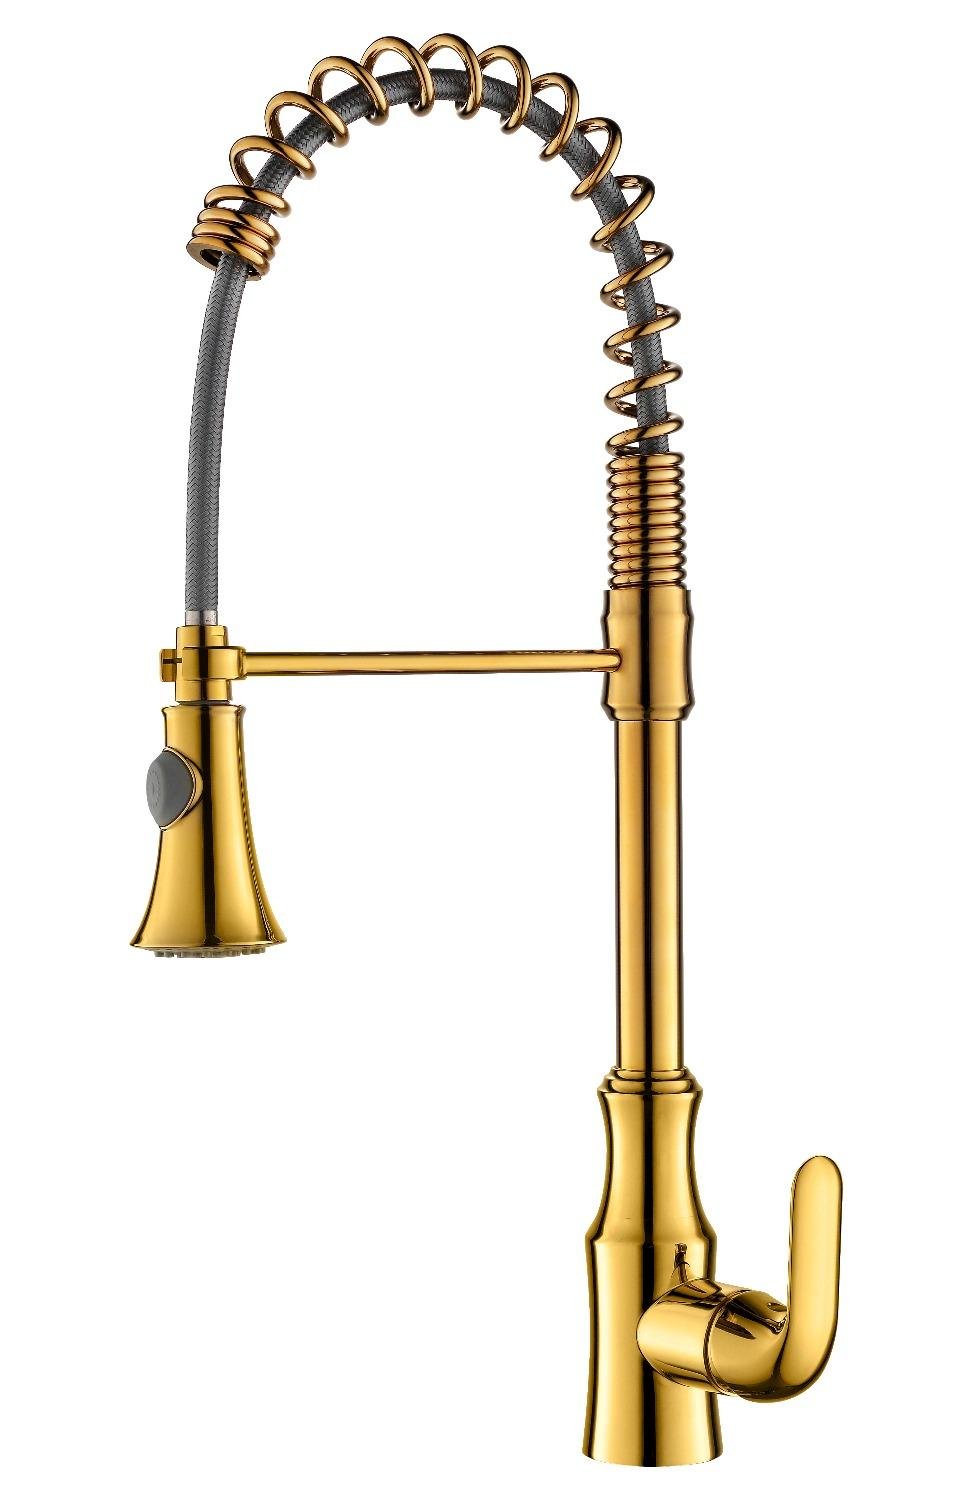 Free ship gold pvd color pull out kitchen faucet mixer tap Single hole /handle deck mounted Spring faucet